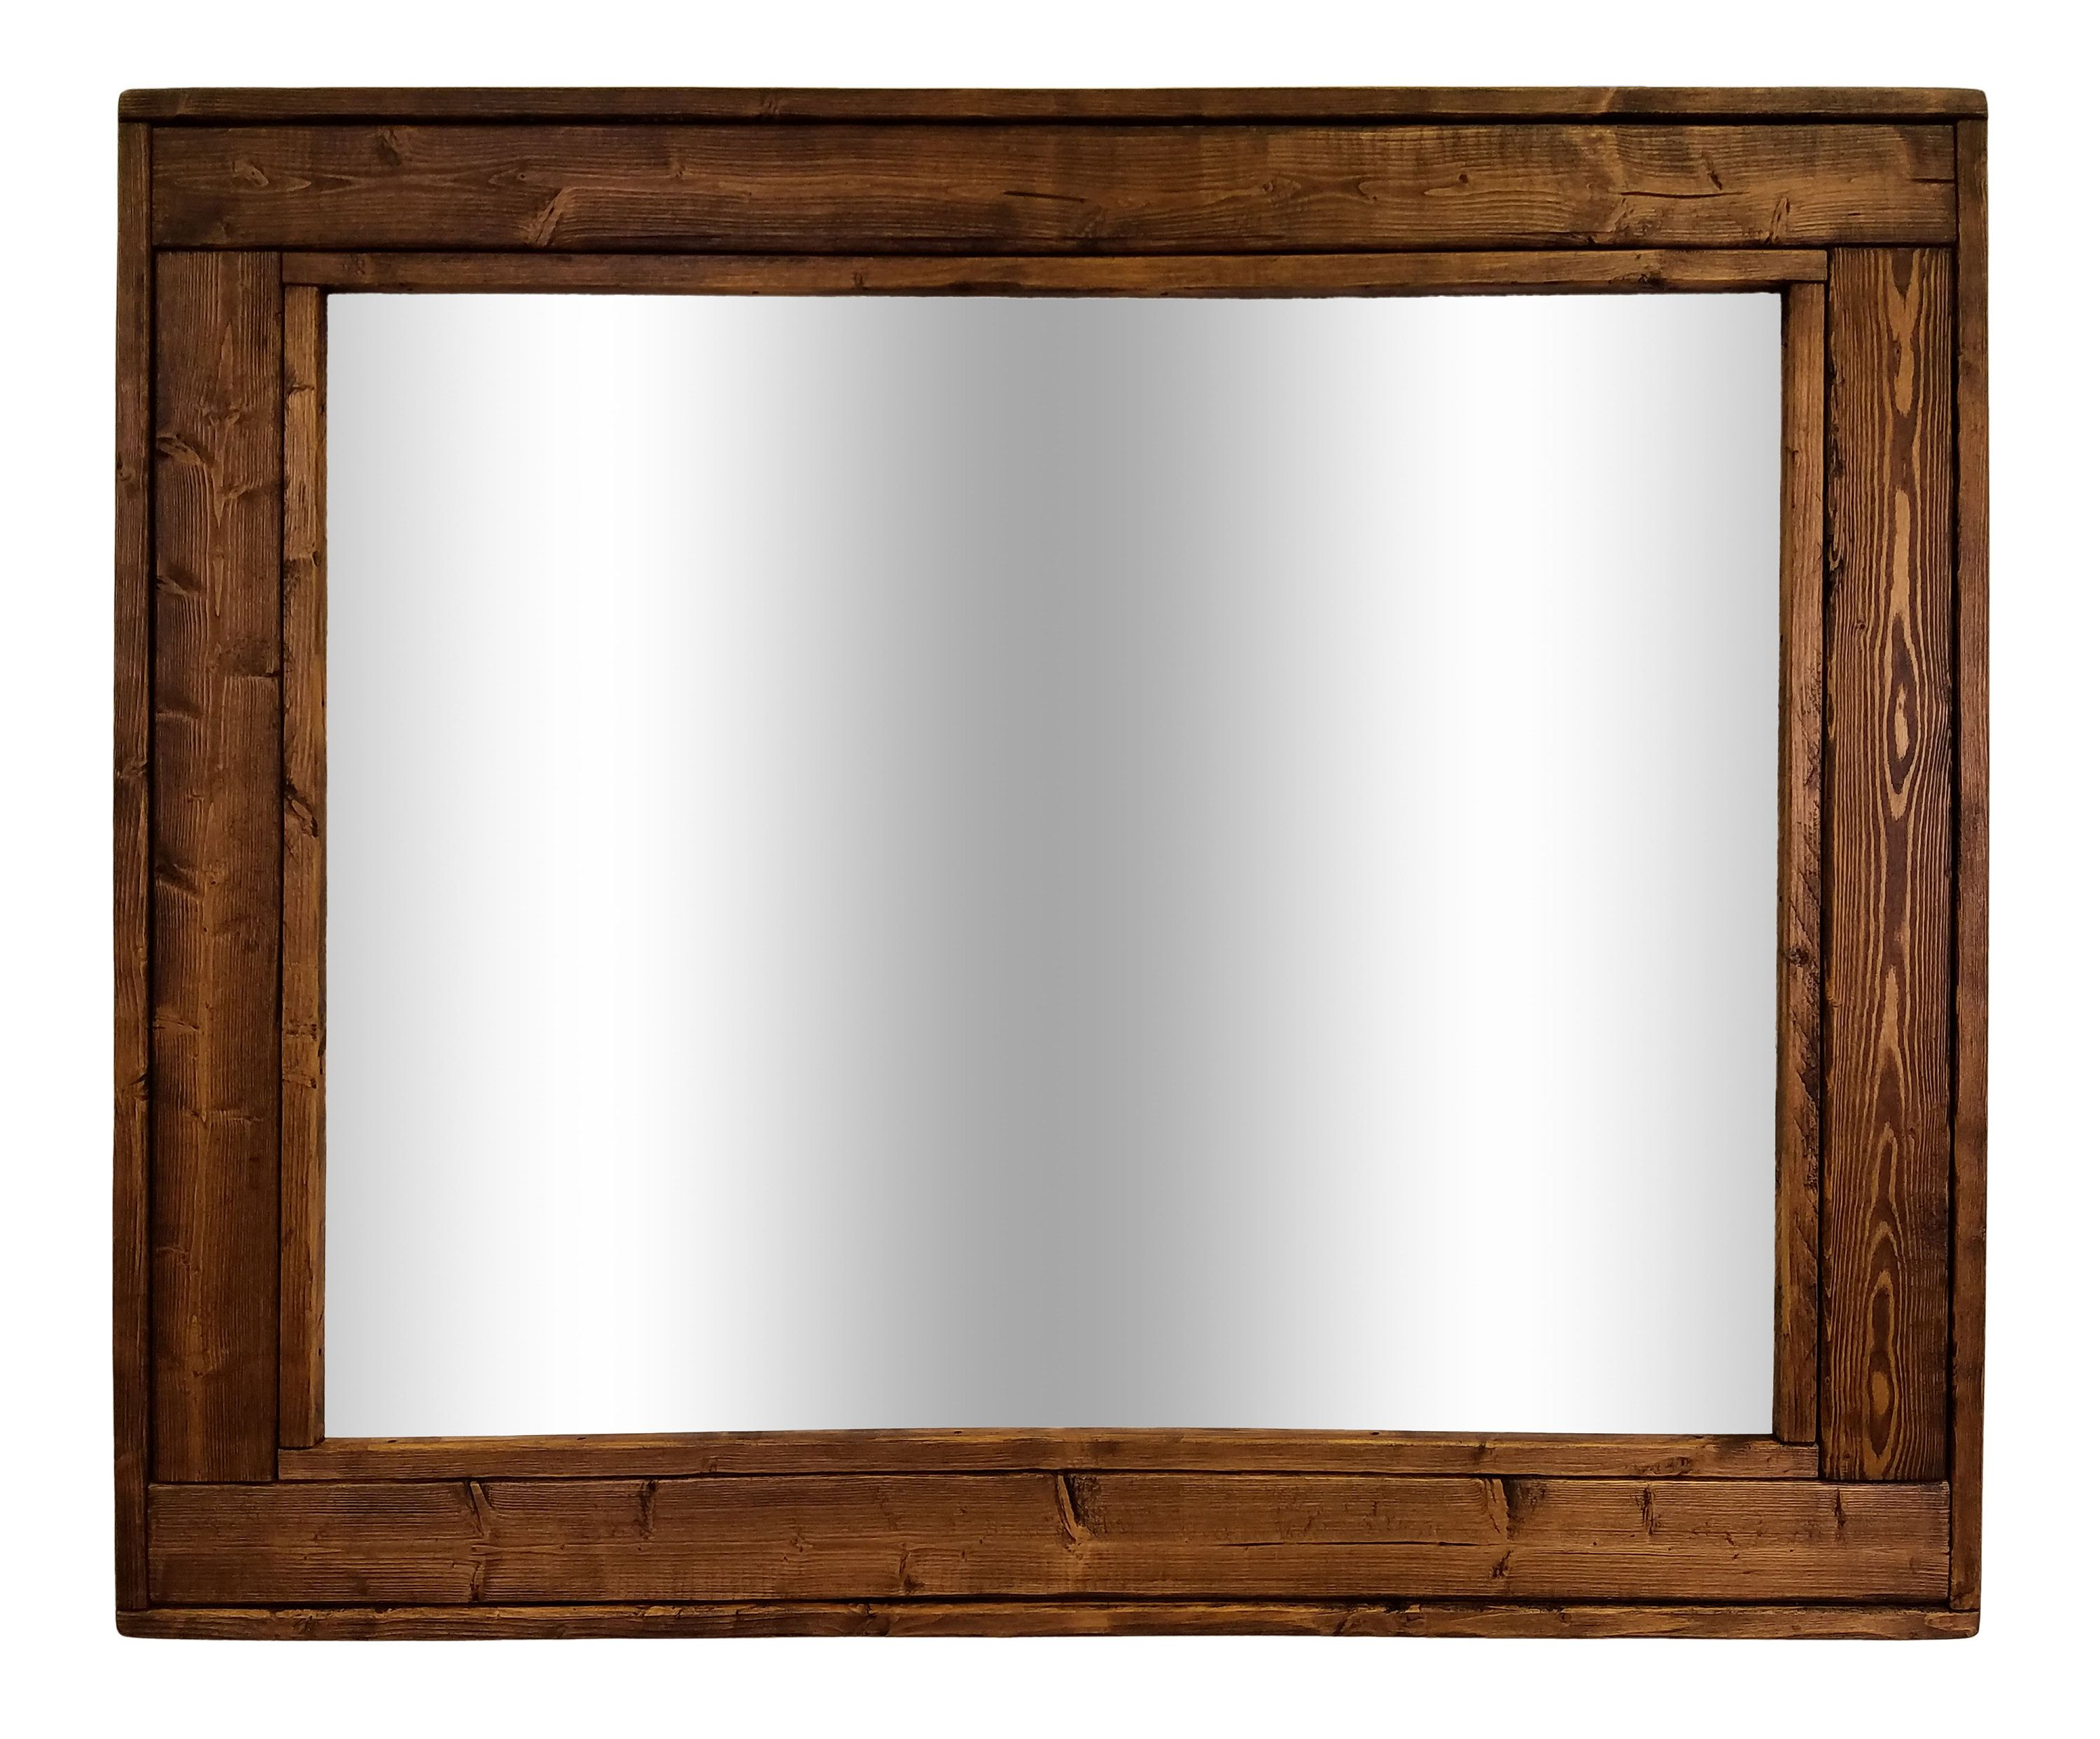 Large Framed Herringbone Reclaimed Wood Mirror Double Vanity Decorative Mirror Rustic Shown In Special Walnut 20 Colors 4 Sizes Wood Framed Mirror Wood Mirror Reclaimed Wood Mirror